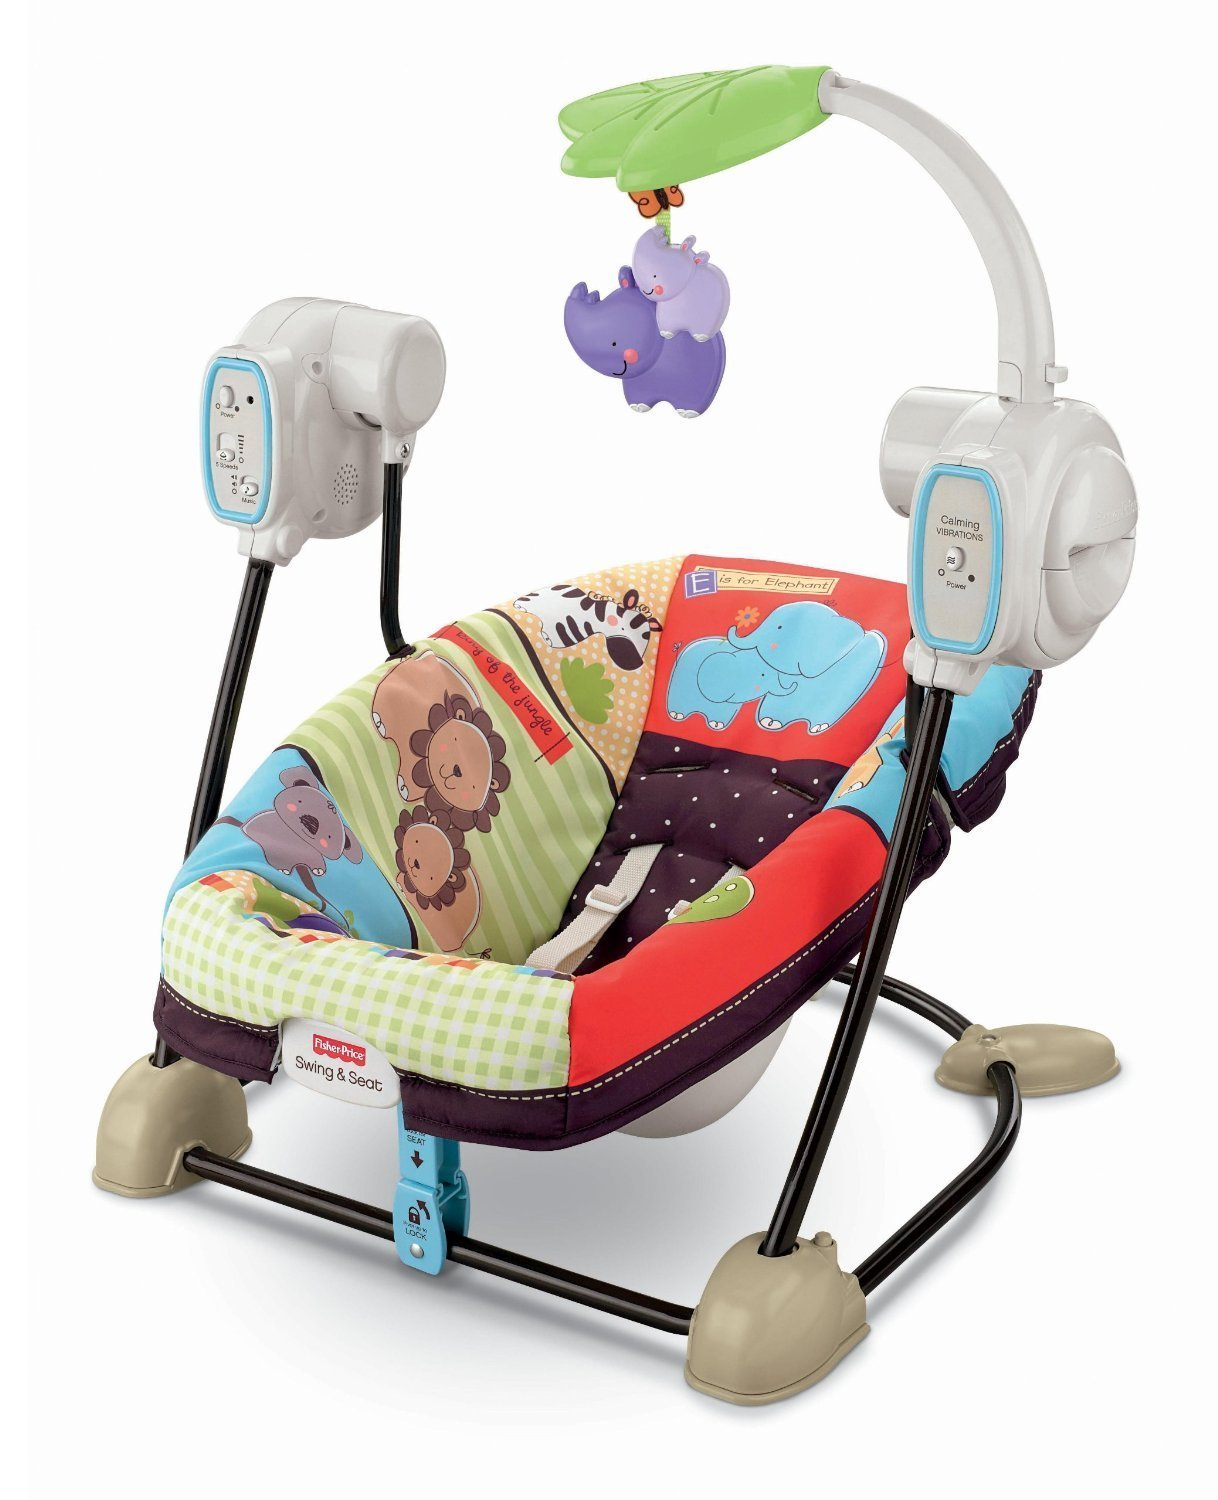 Amazon com fisher price space saver swing and seat luv u zoo stationary baby swings baby